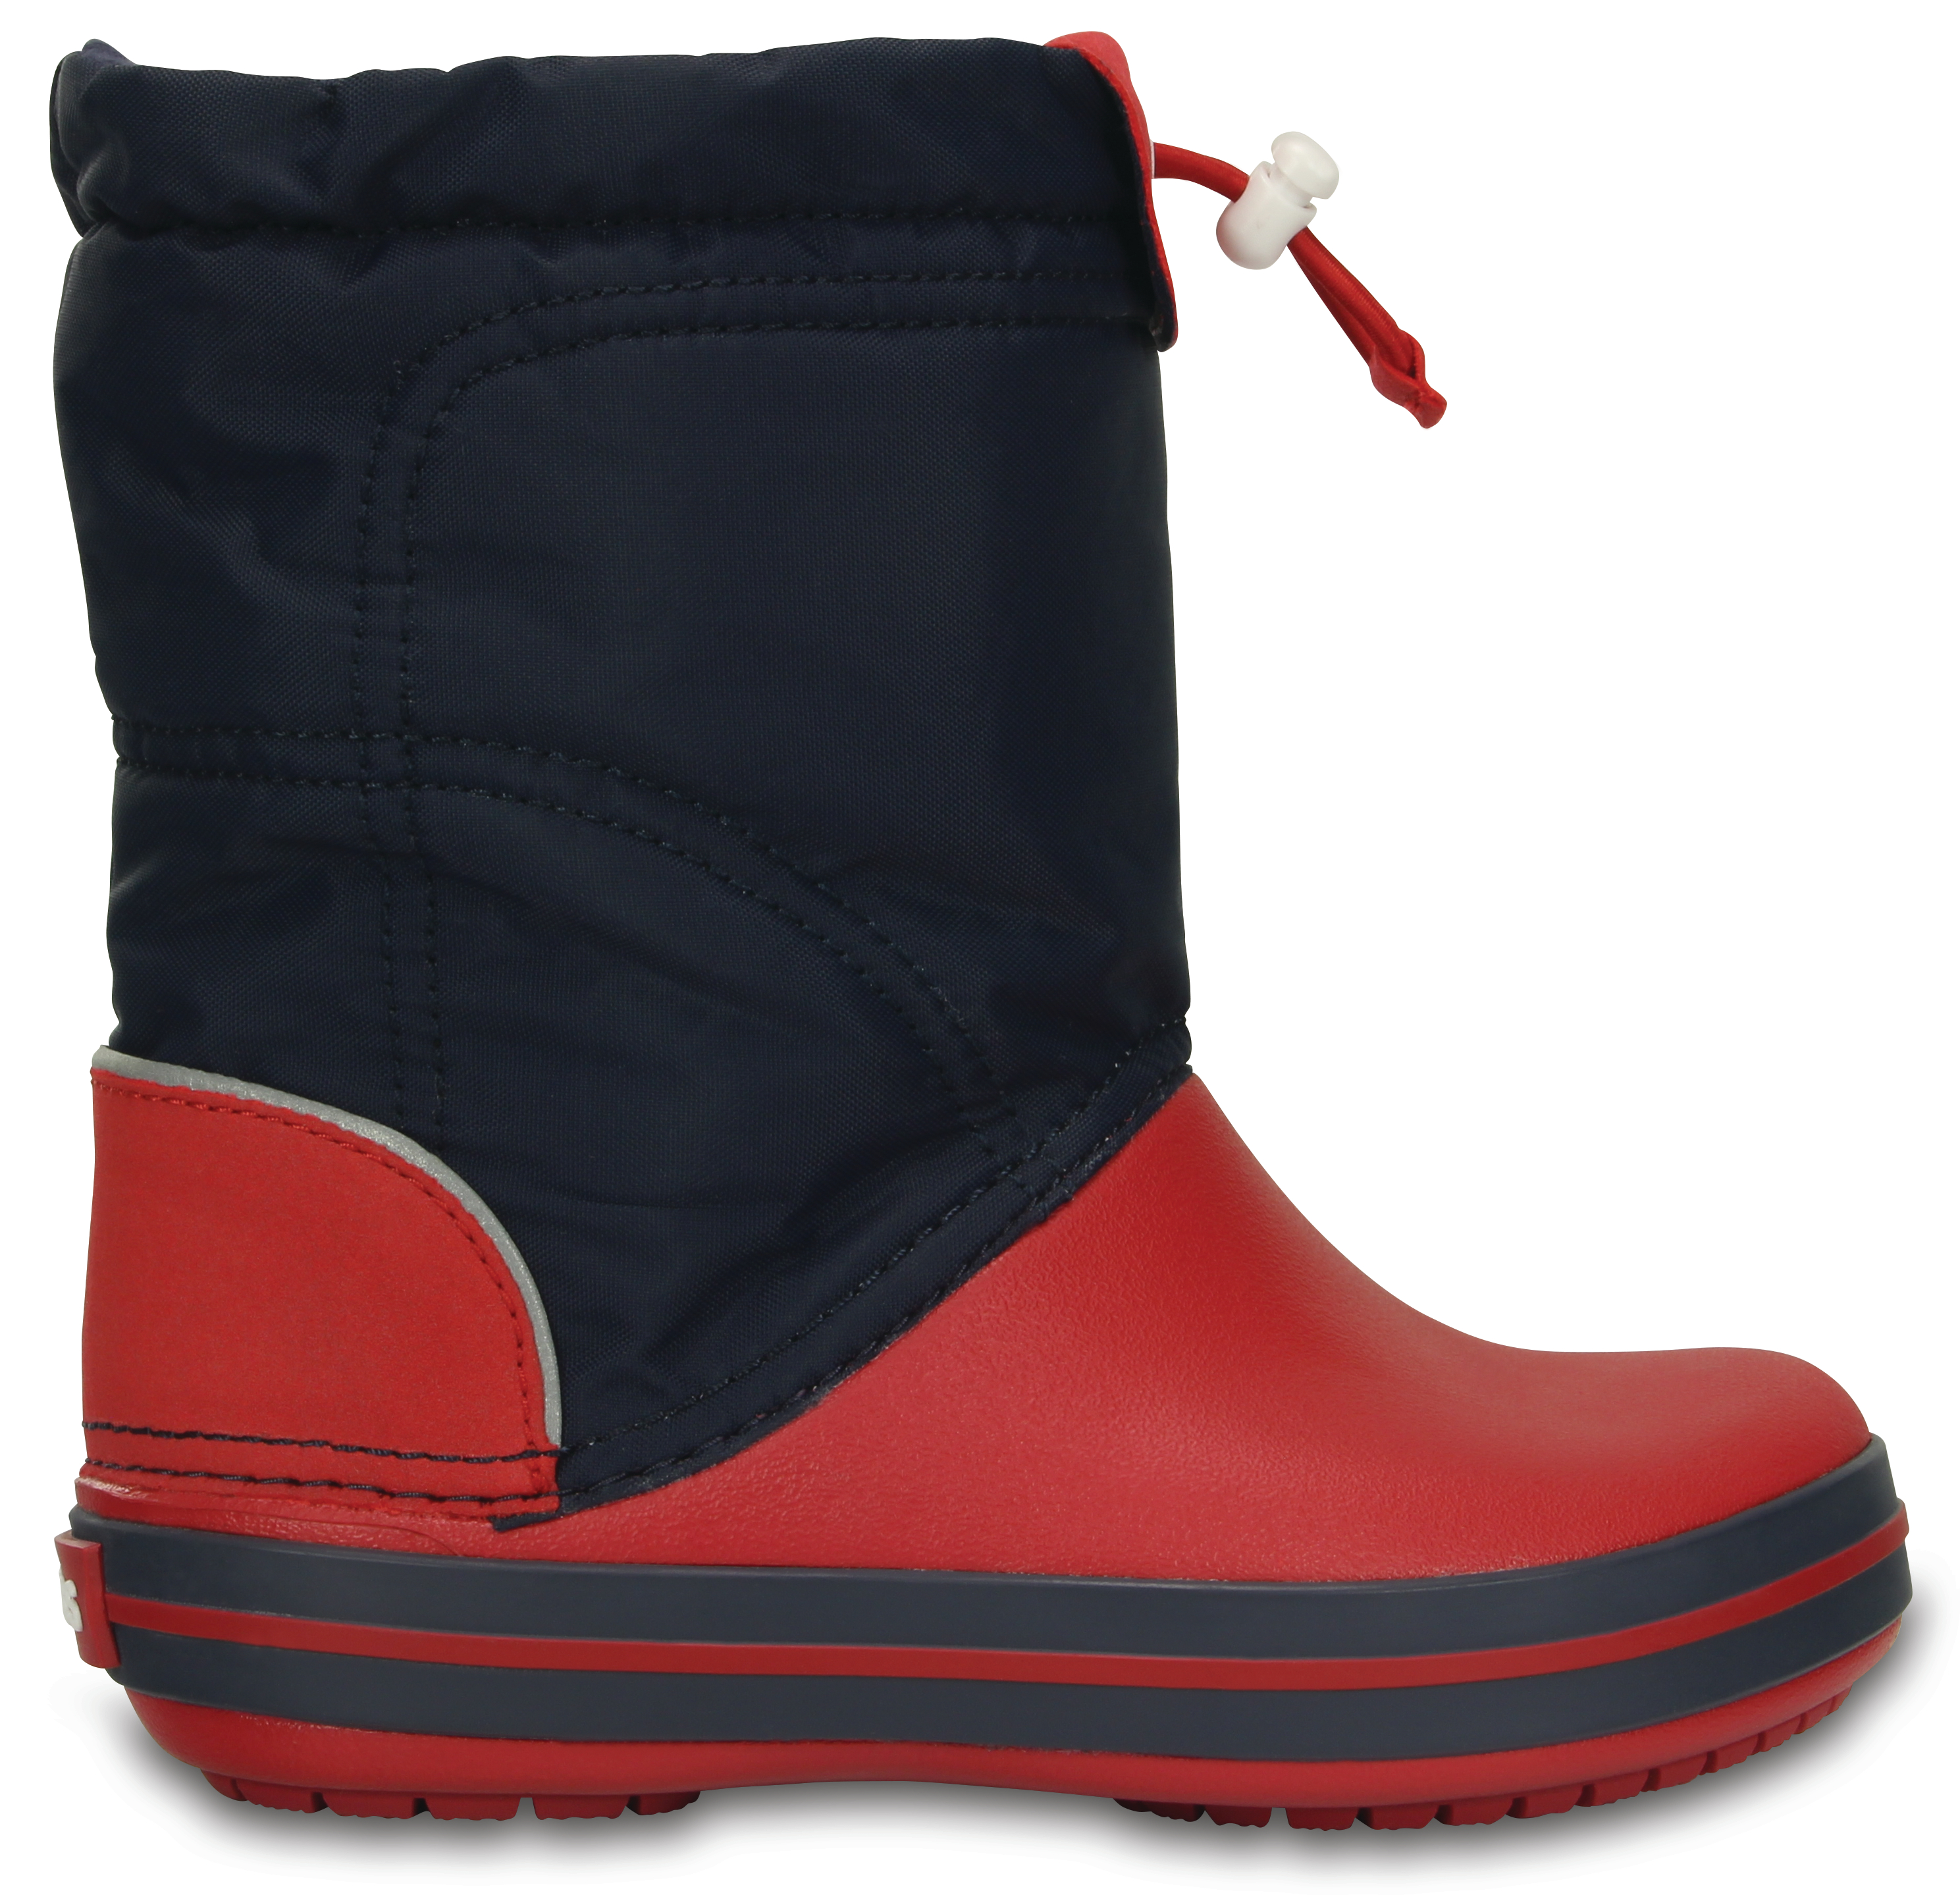 Crocs Crocband LodgePoint Boot K - Navy/Red C10